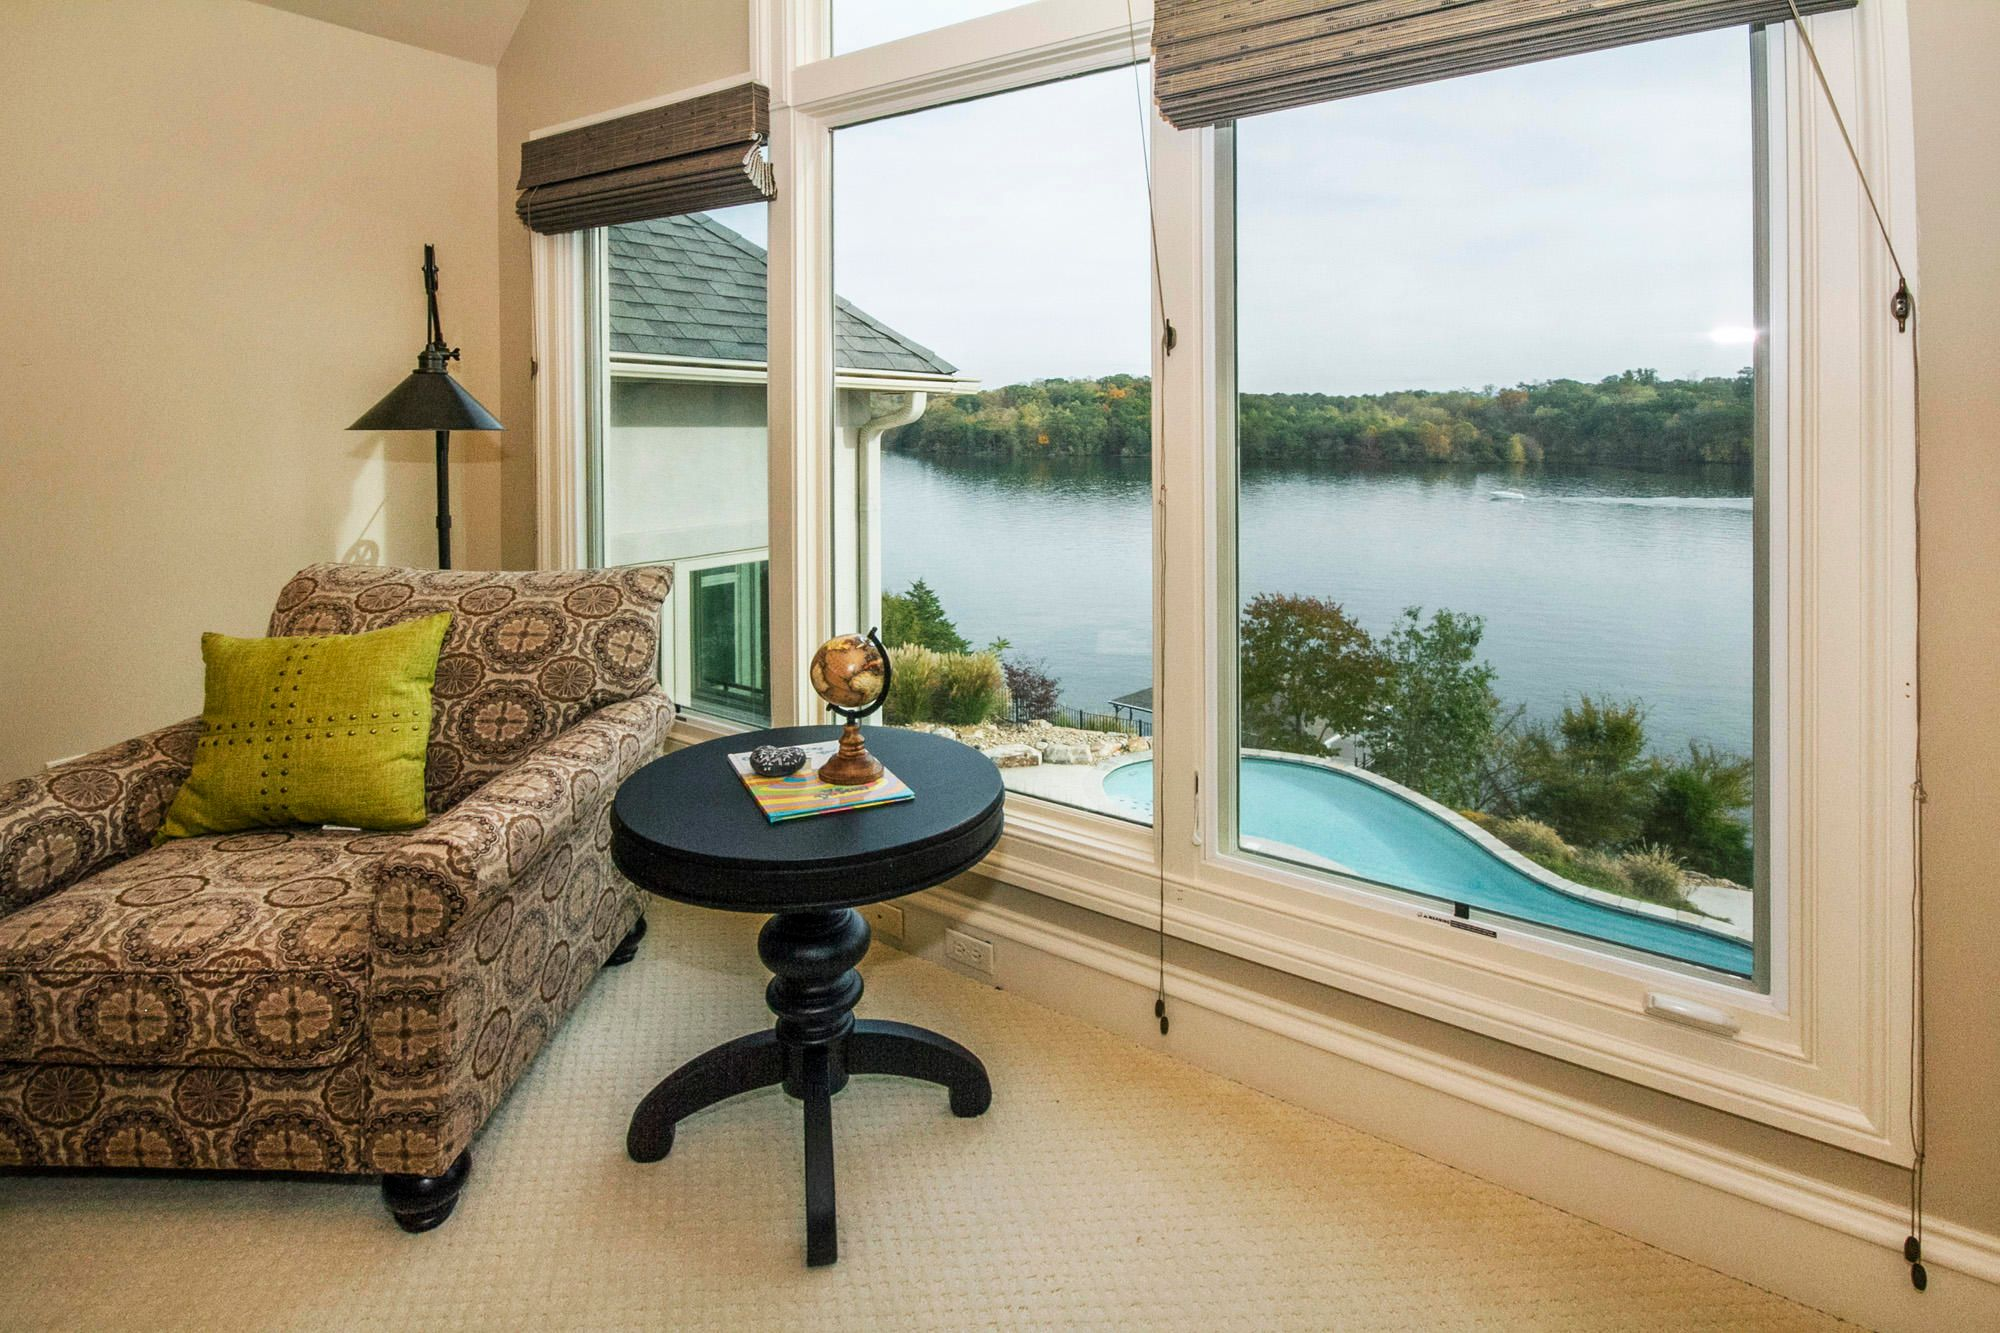 Lake & Pool Views for your Guests!